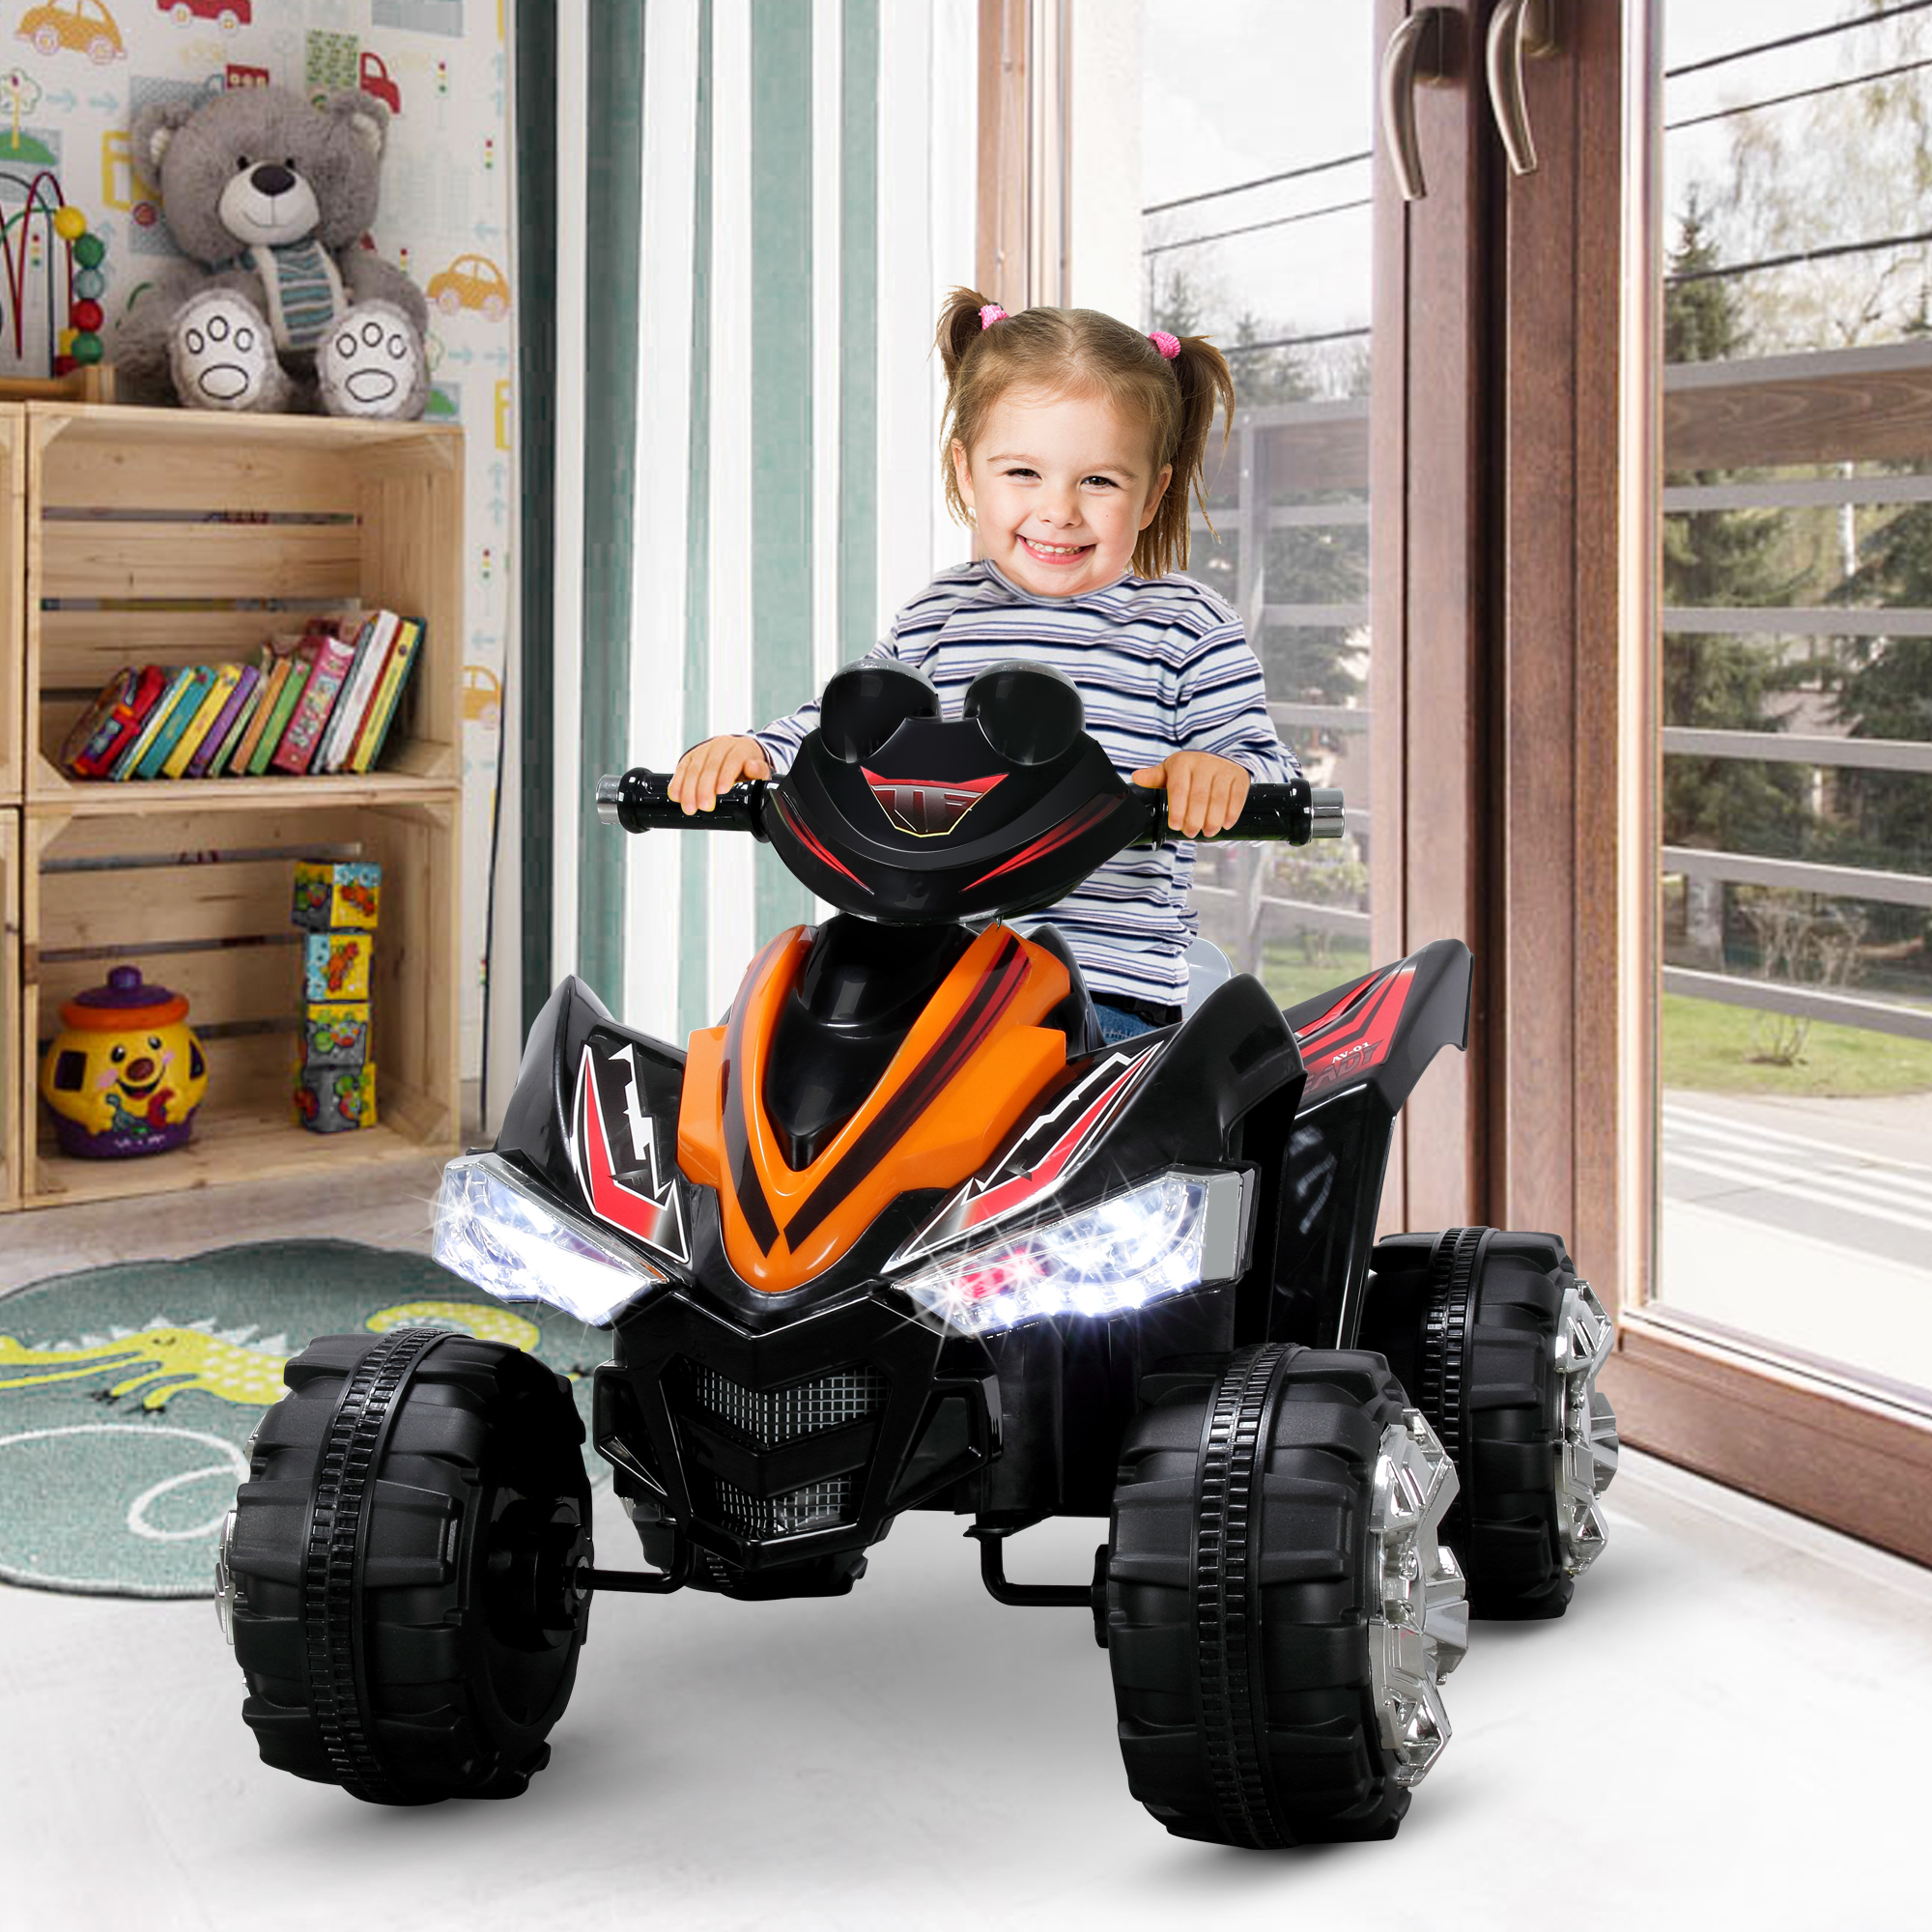 Details about Kids Ride-On Car 12V Kids Electric Car with 2 Speeds and LED  Head Lights, Orange